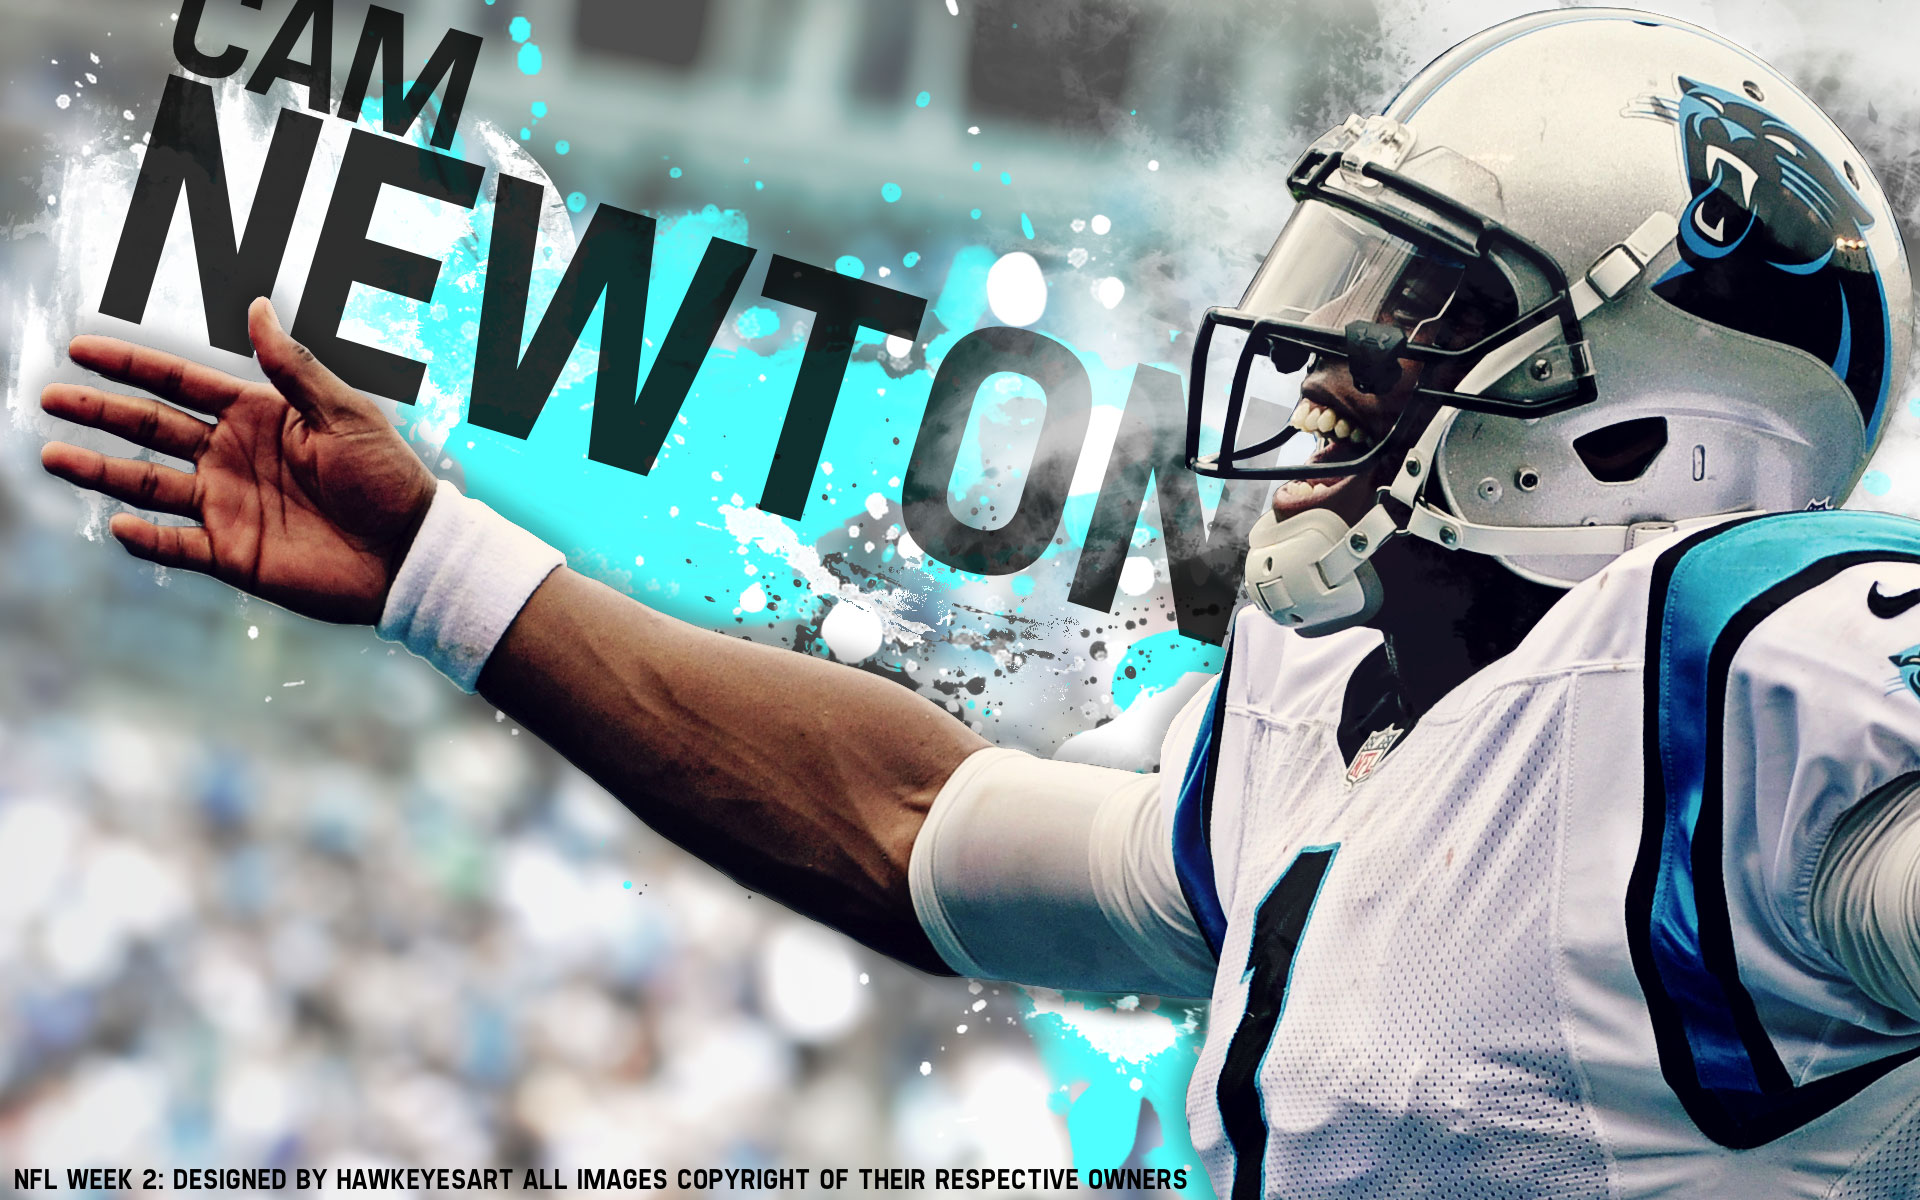 Cam Newton Wallpapers High Quality Download Free hvccIXOh